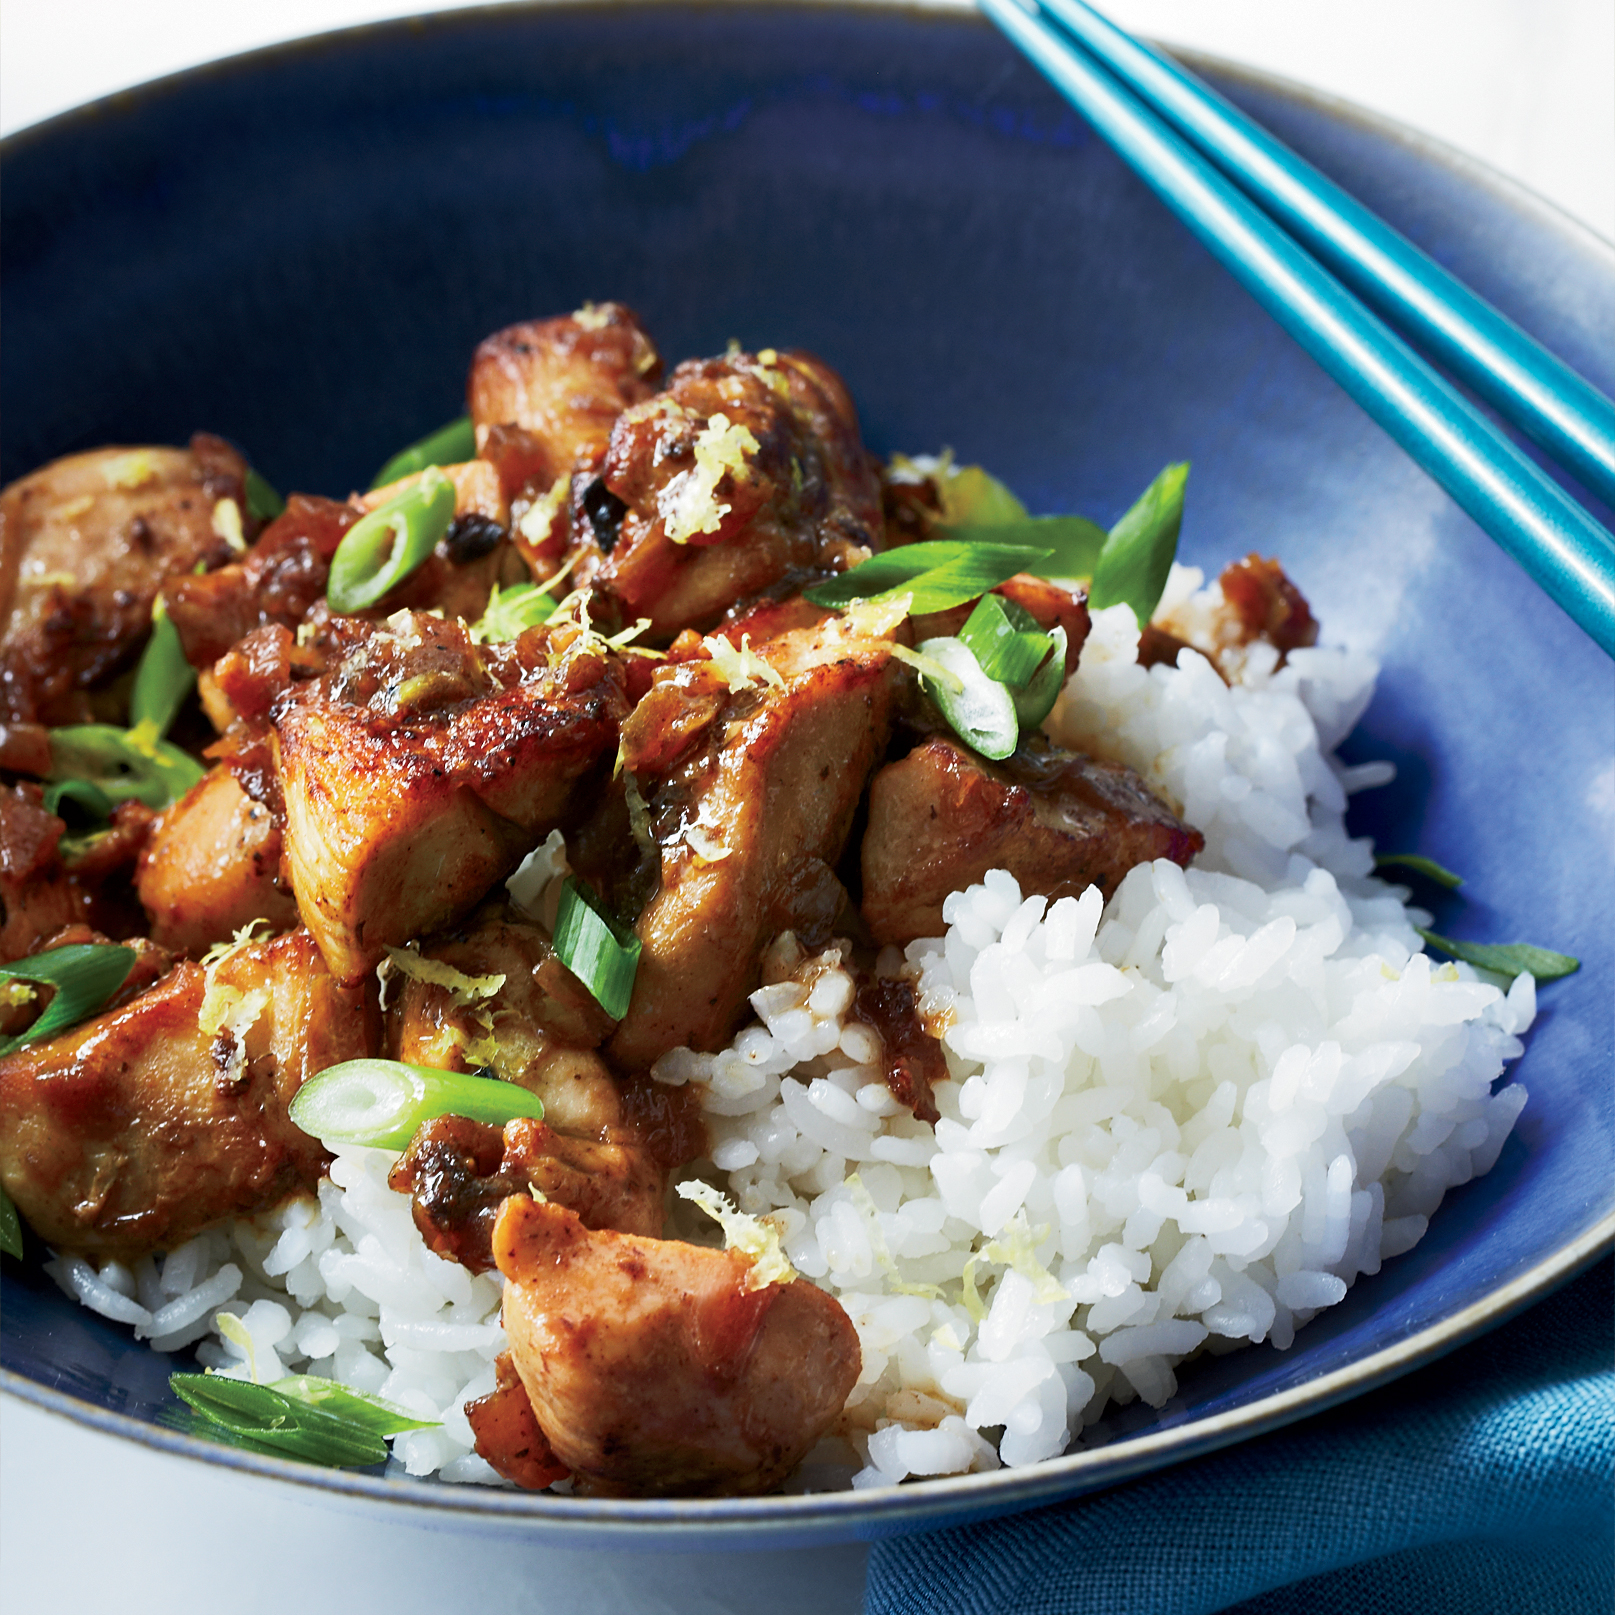 Lemony Chicken Stir-Fry Recipe